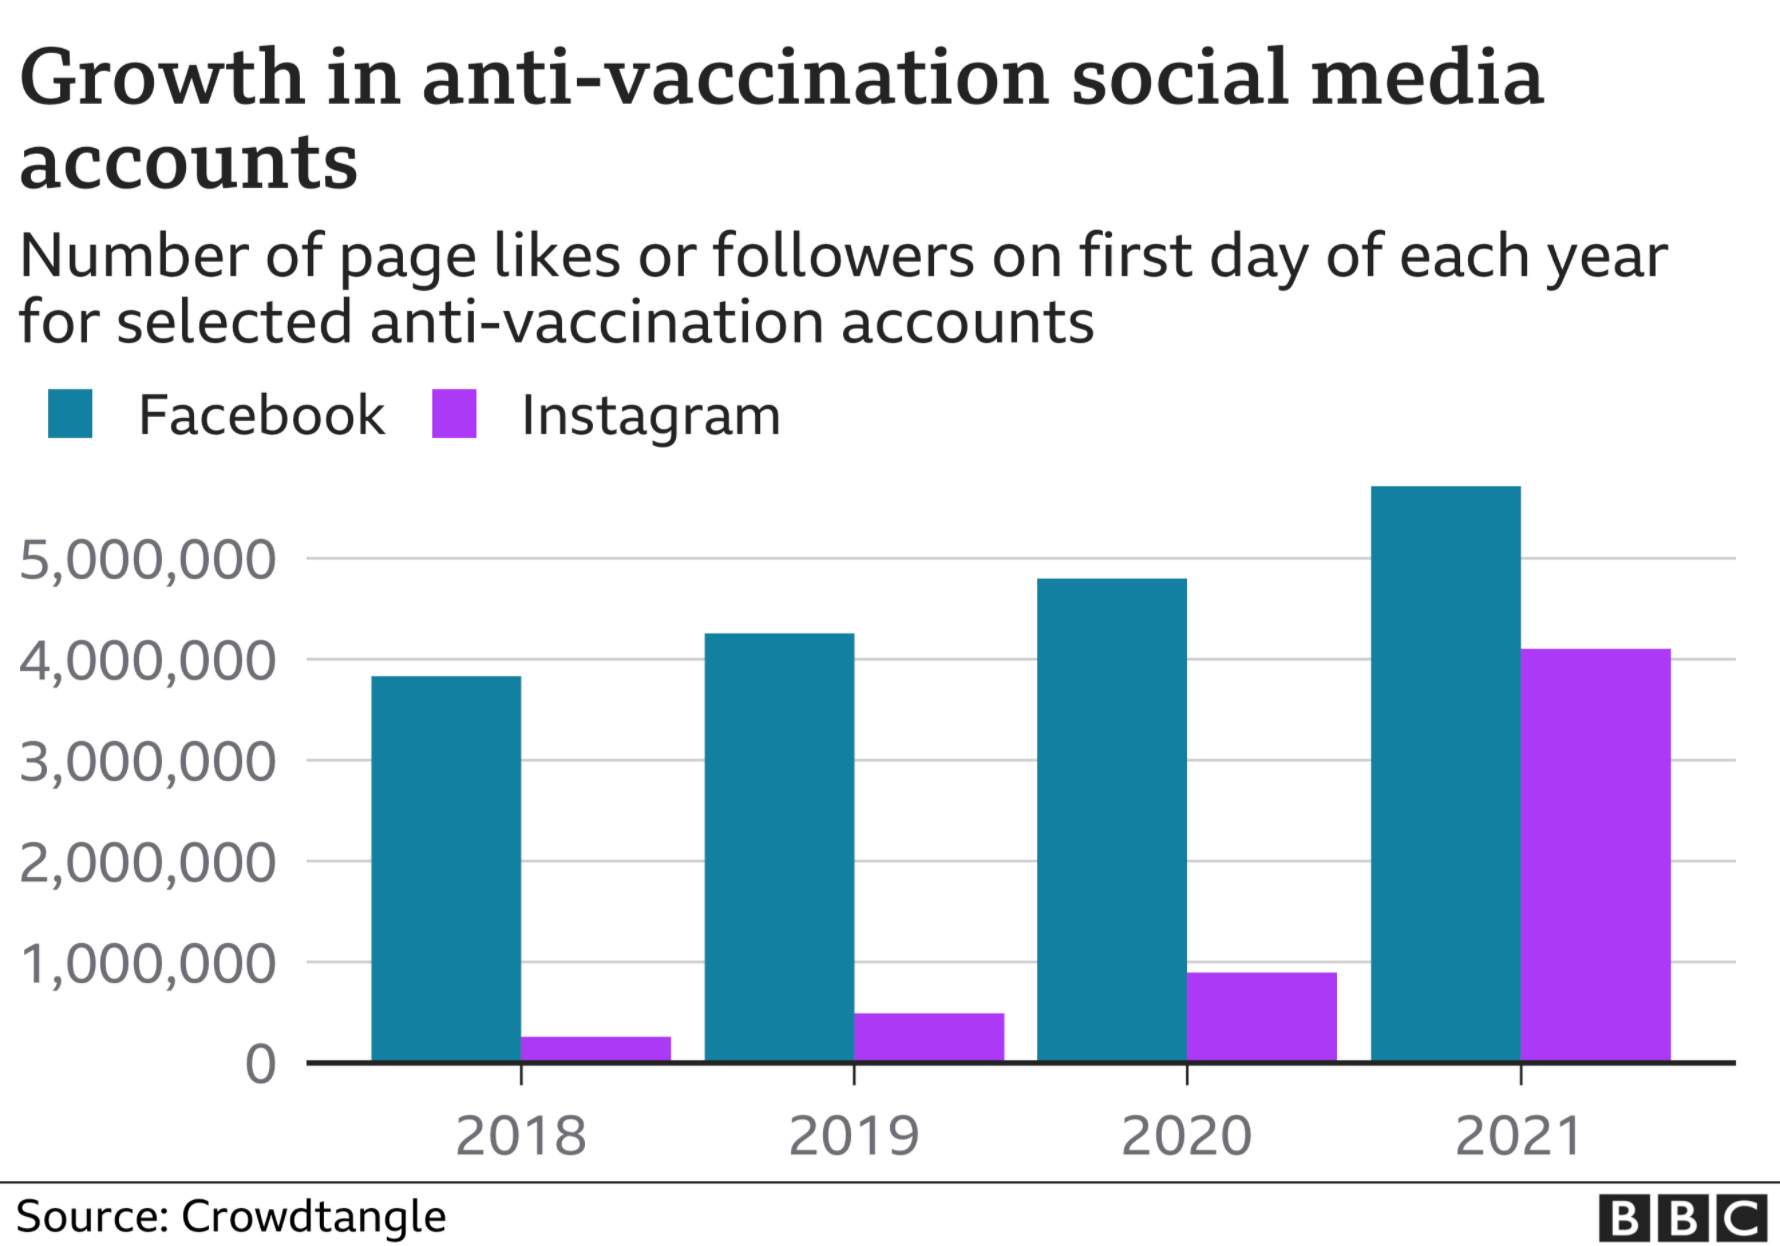 Growth in anti-vaccination social media accounts, 2018-2021